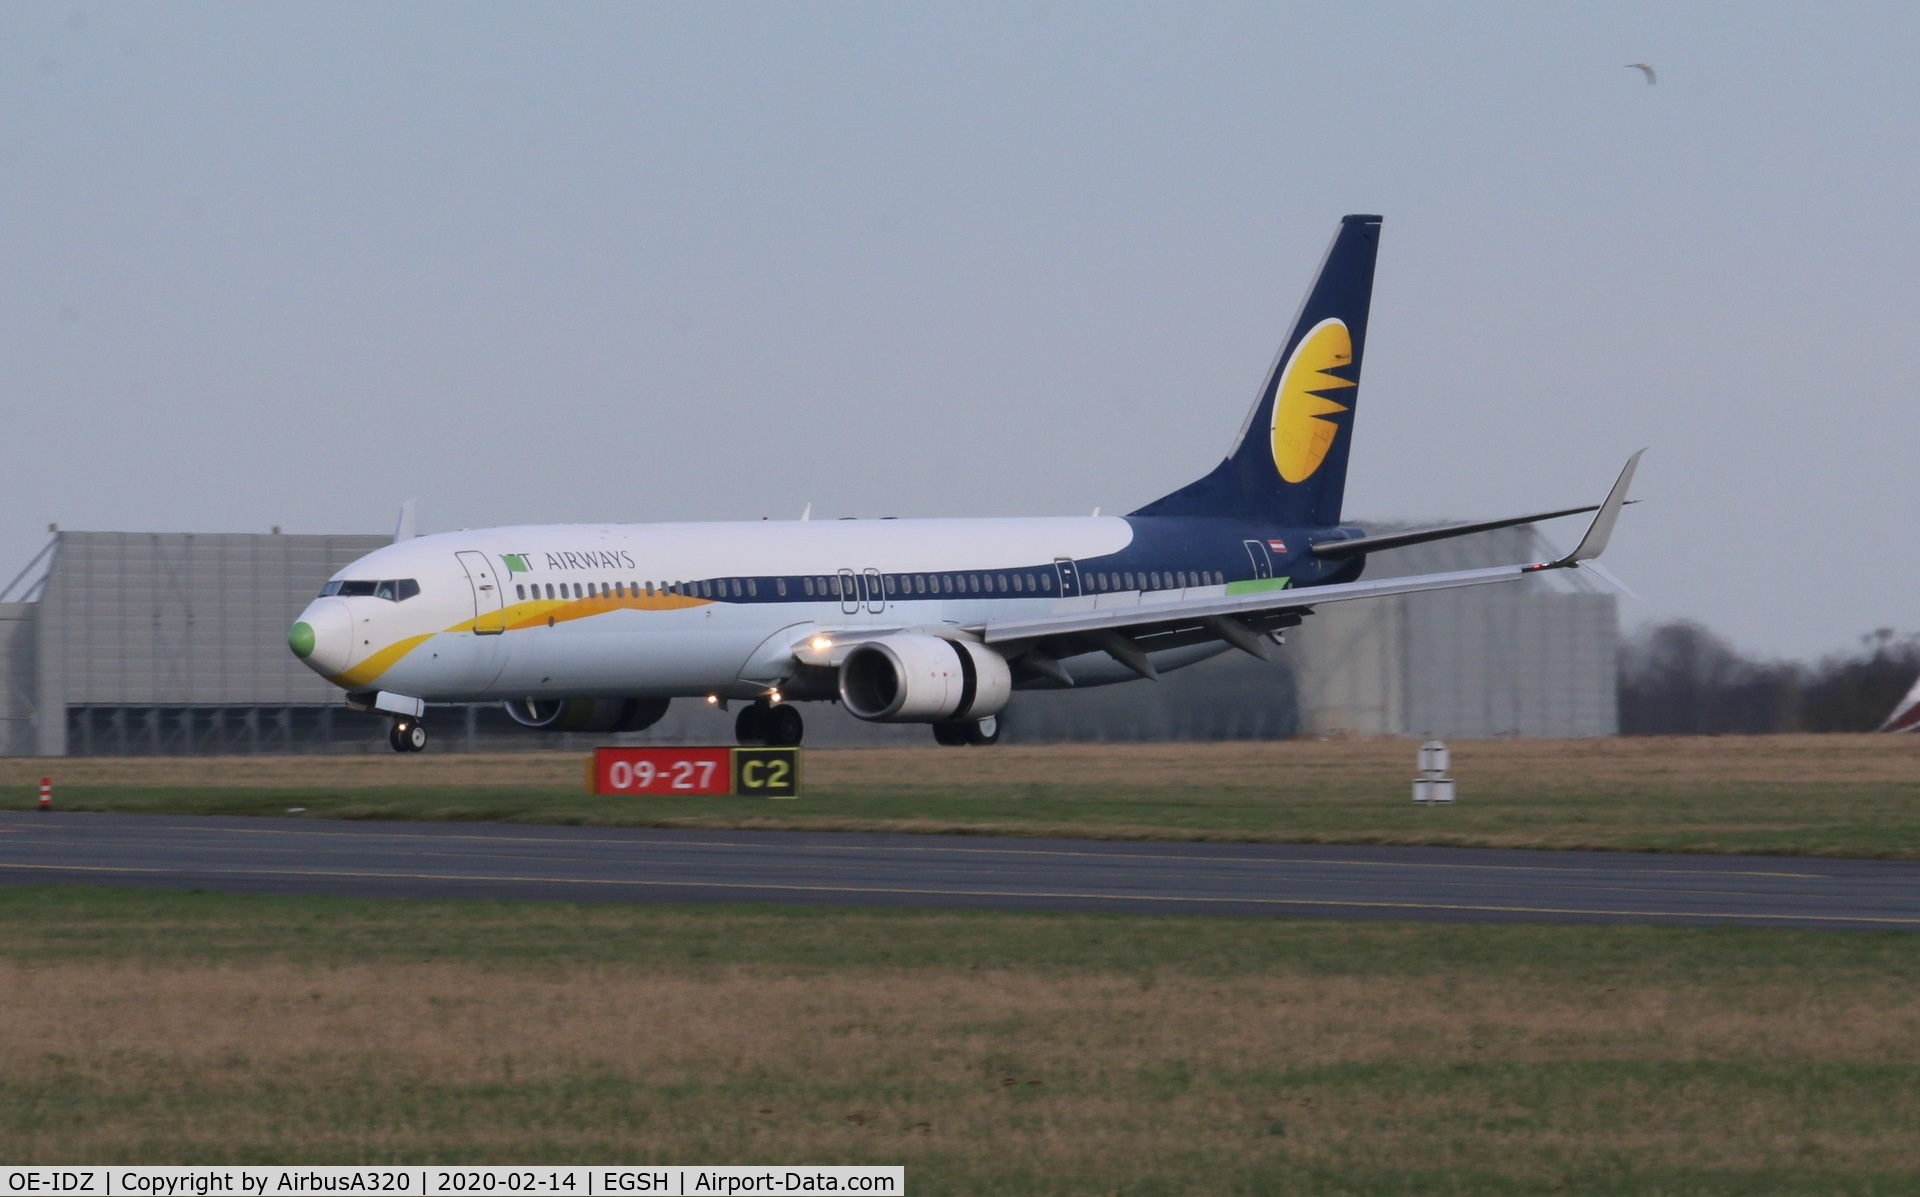 OE-IDZ, 2008 Boeing 737-96NER C/N 35227, Landing on Rwy 27 after a short flight from Lasham in for respray with Air Livery